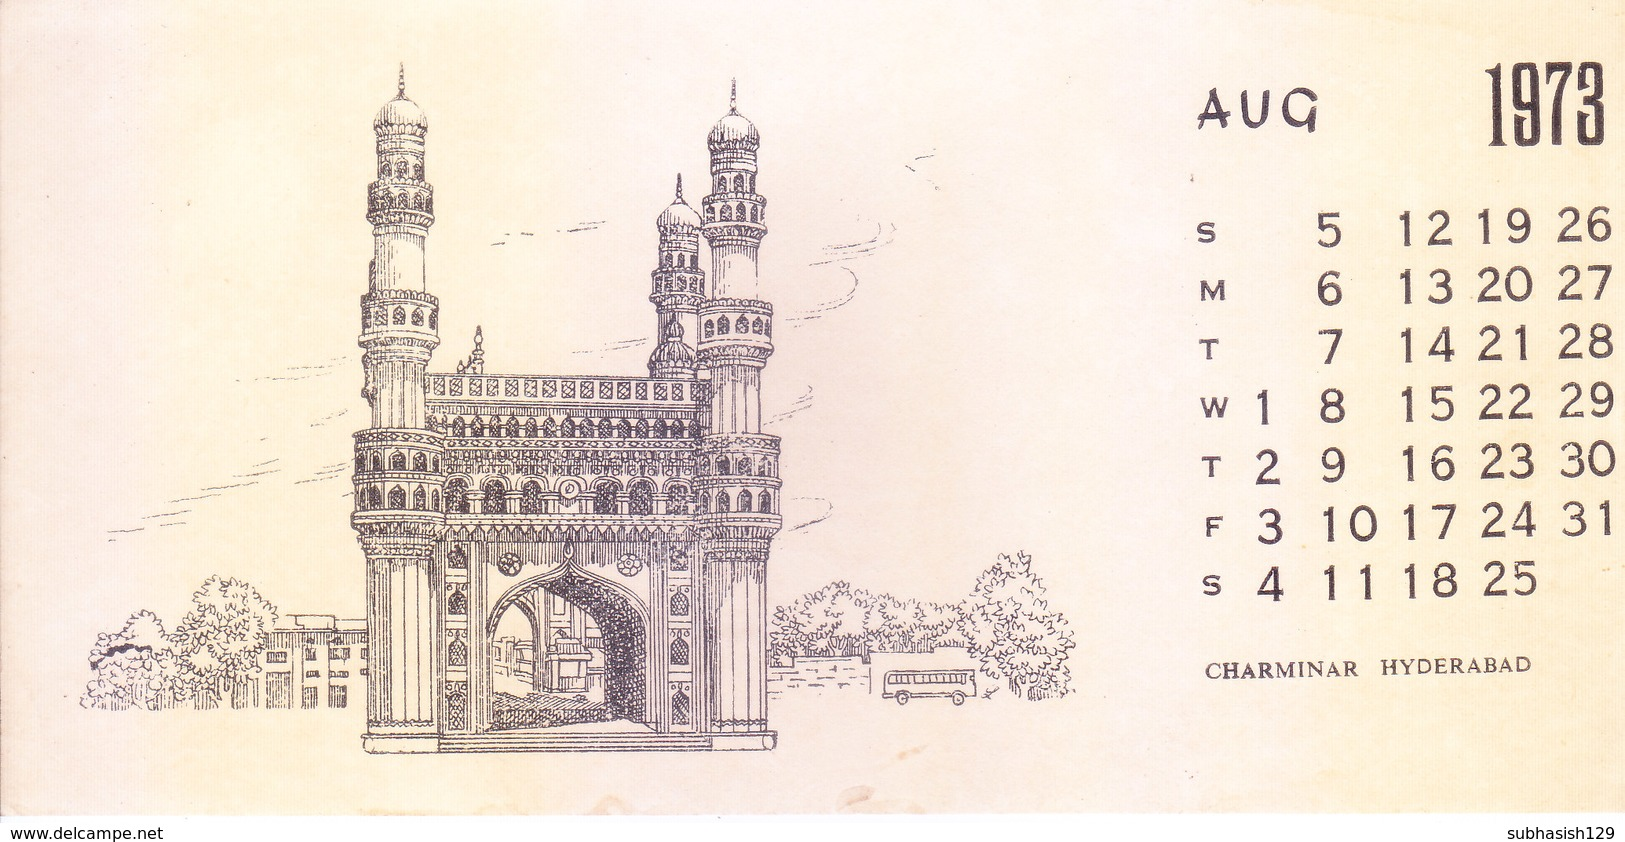 INDIA - RARE AND OLD PAPER CALENDAR - AUGUST 1973 -  PRINTED HAND SKETCH - CHARMINAR, HYDERABAD - ANTIQUE ITEM - Big : 1971-80